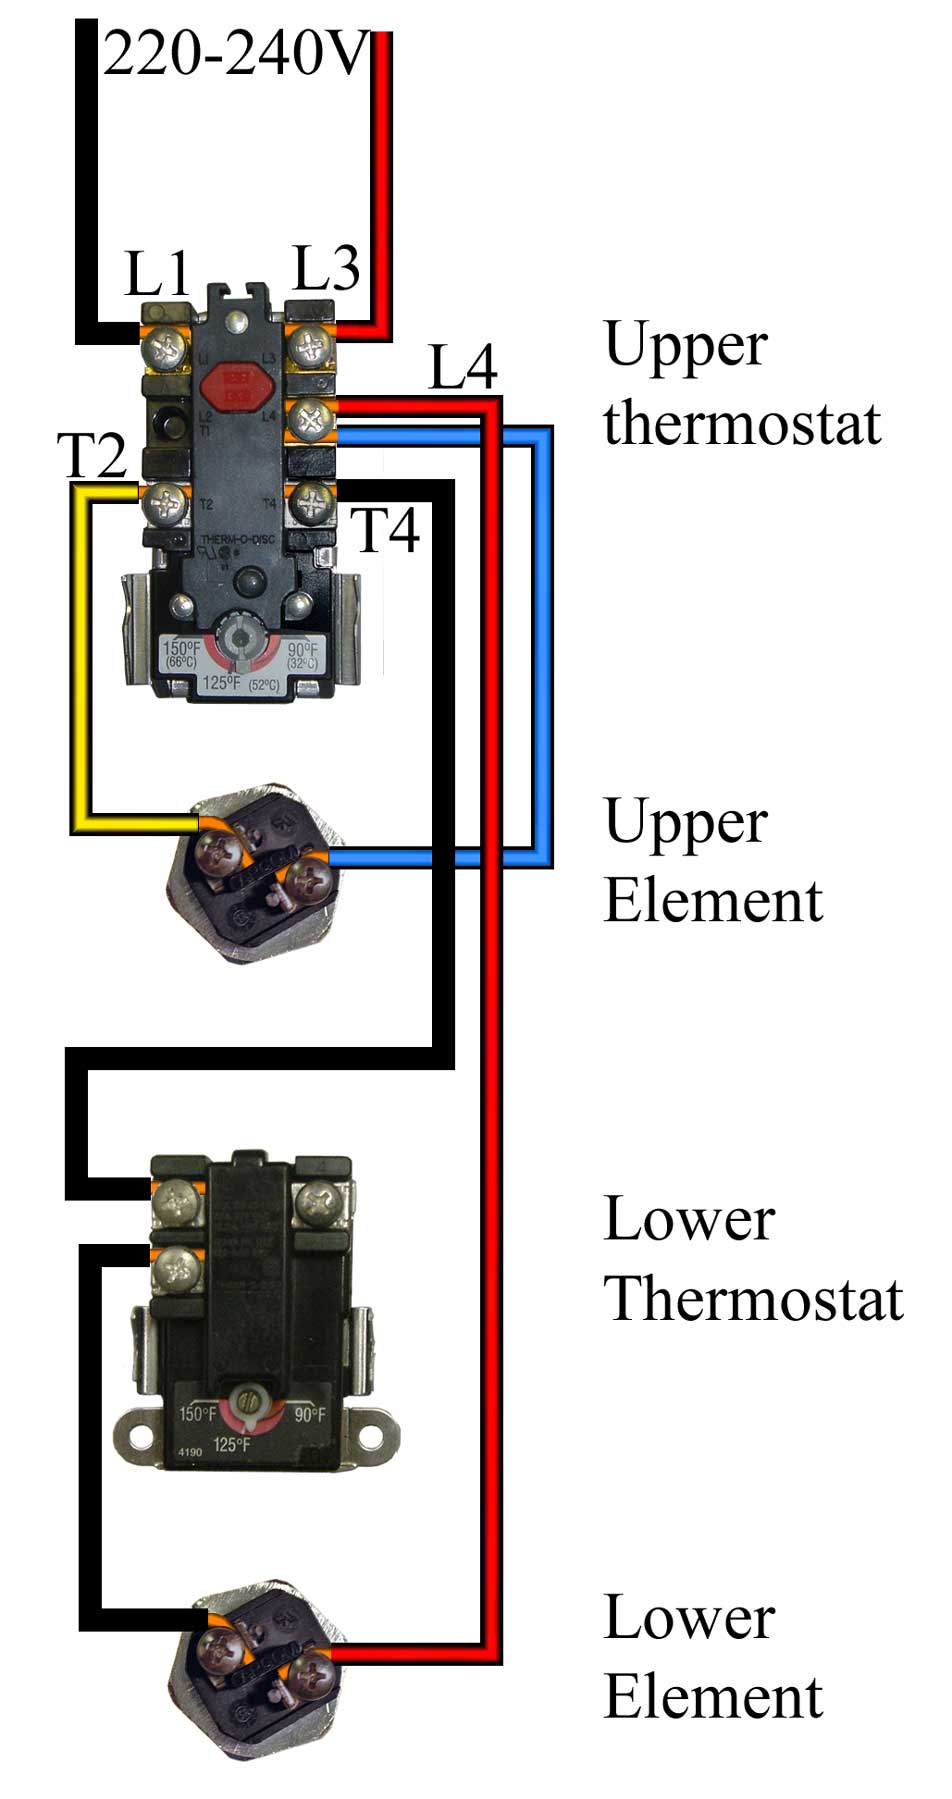 Wiring Diagram For 240v Water Heater : How to wire water heater for volts